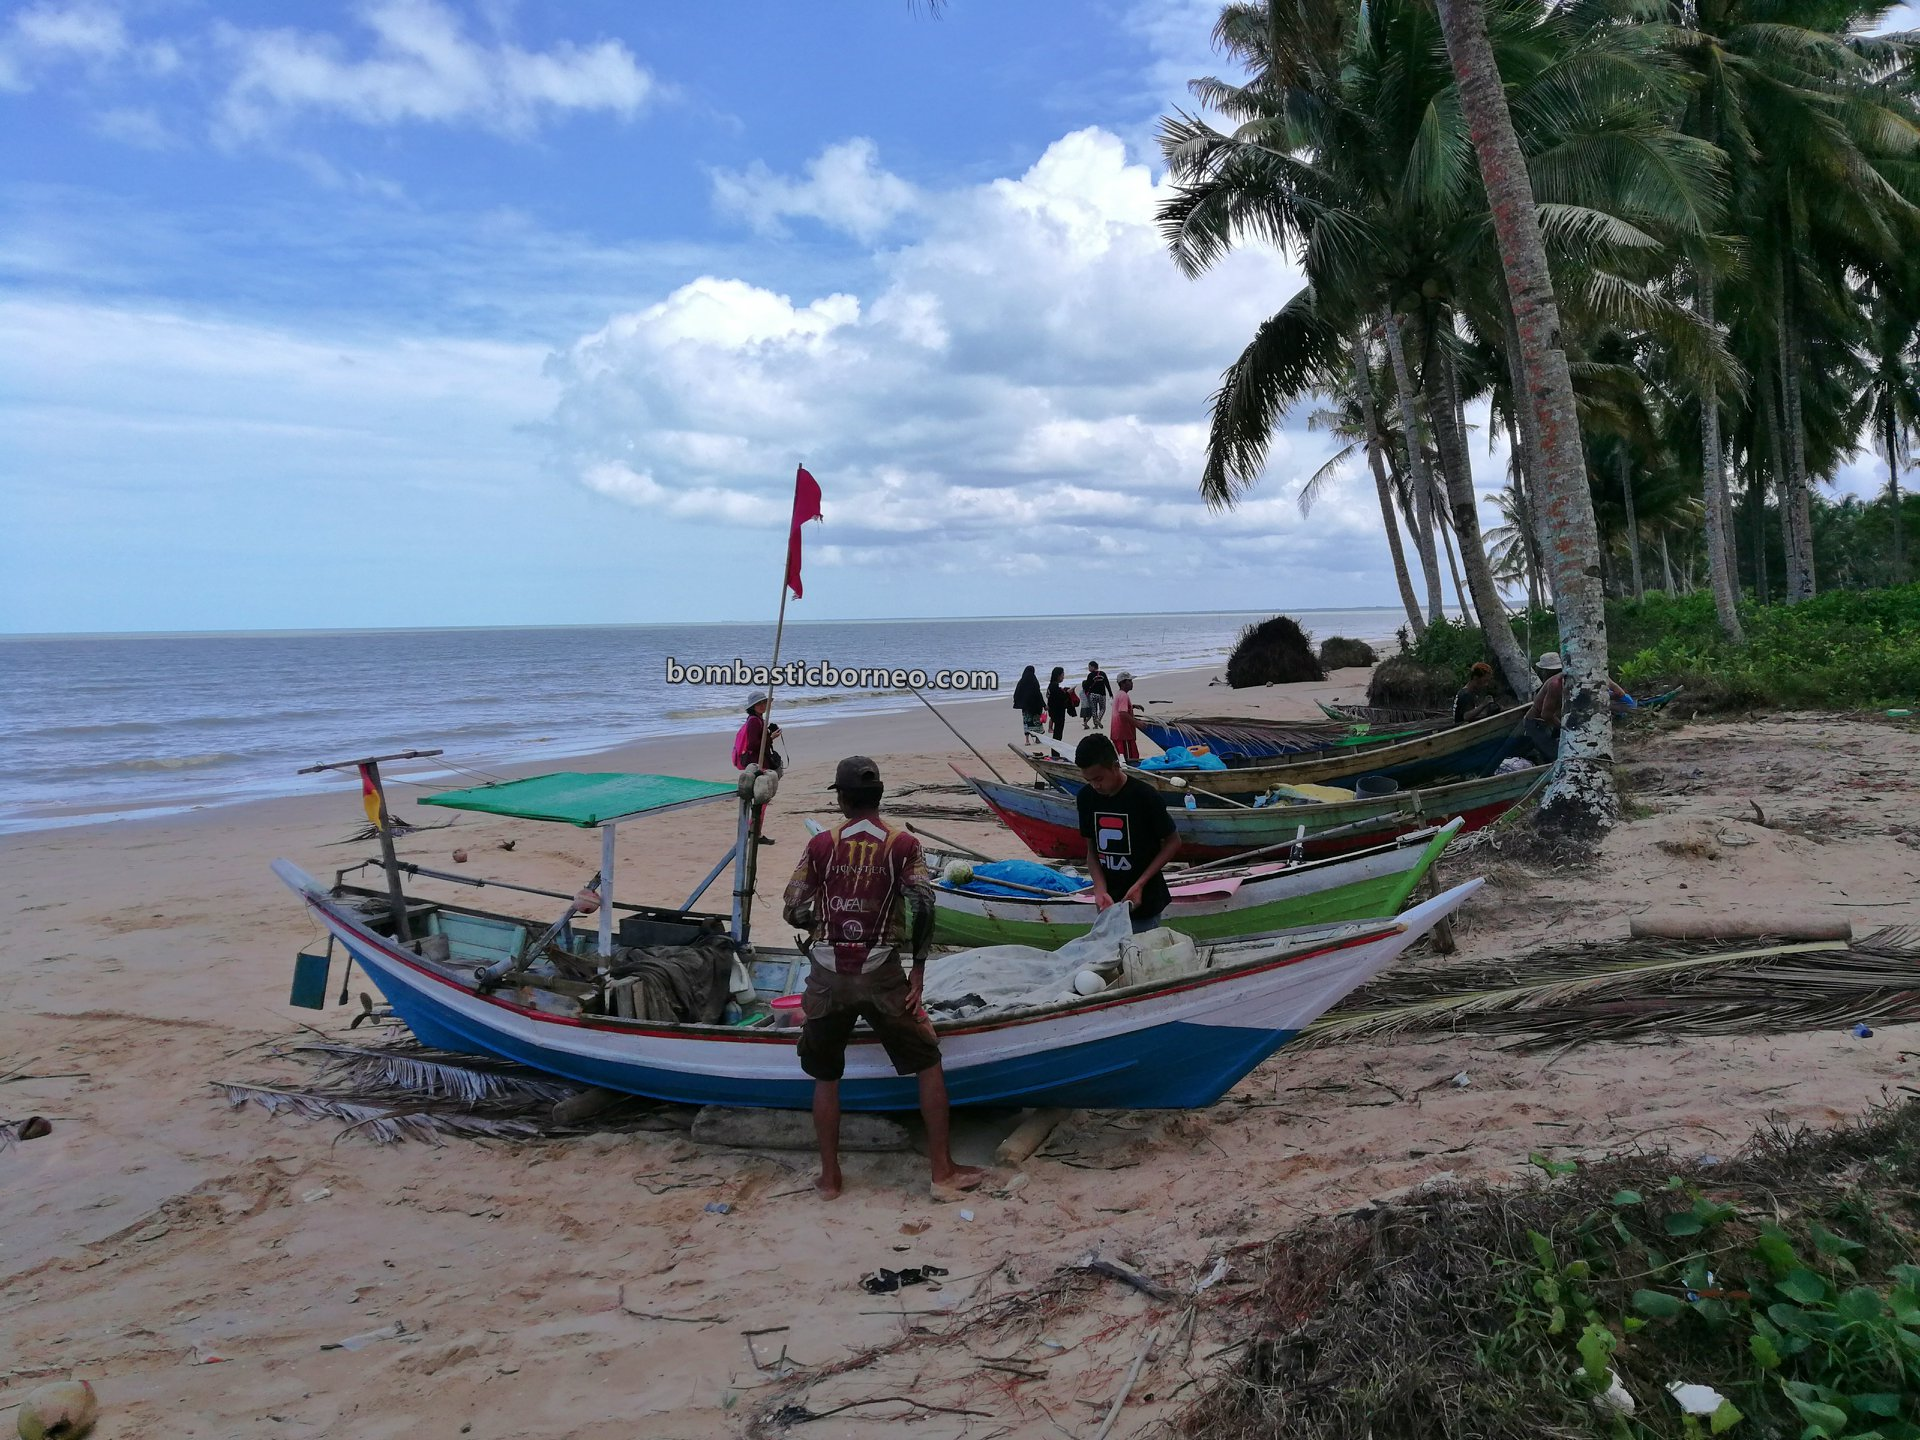 Pantai Putri Serayi, beach, adventure, traditional, nature, Malay fishing village, Jawai Selatan, wisata alam, Tourism, travel guide, Borneo, Trans Border, 婆罗洲游踪, 印尼西加里曼丹, 三发马来渔村